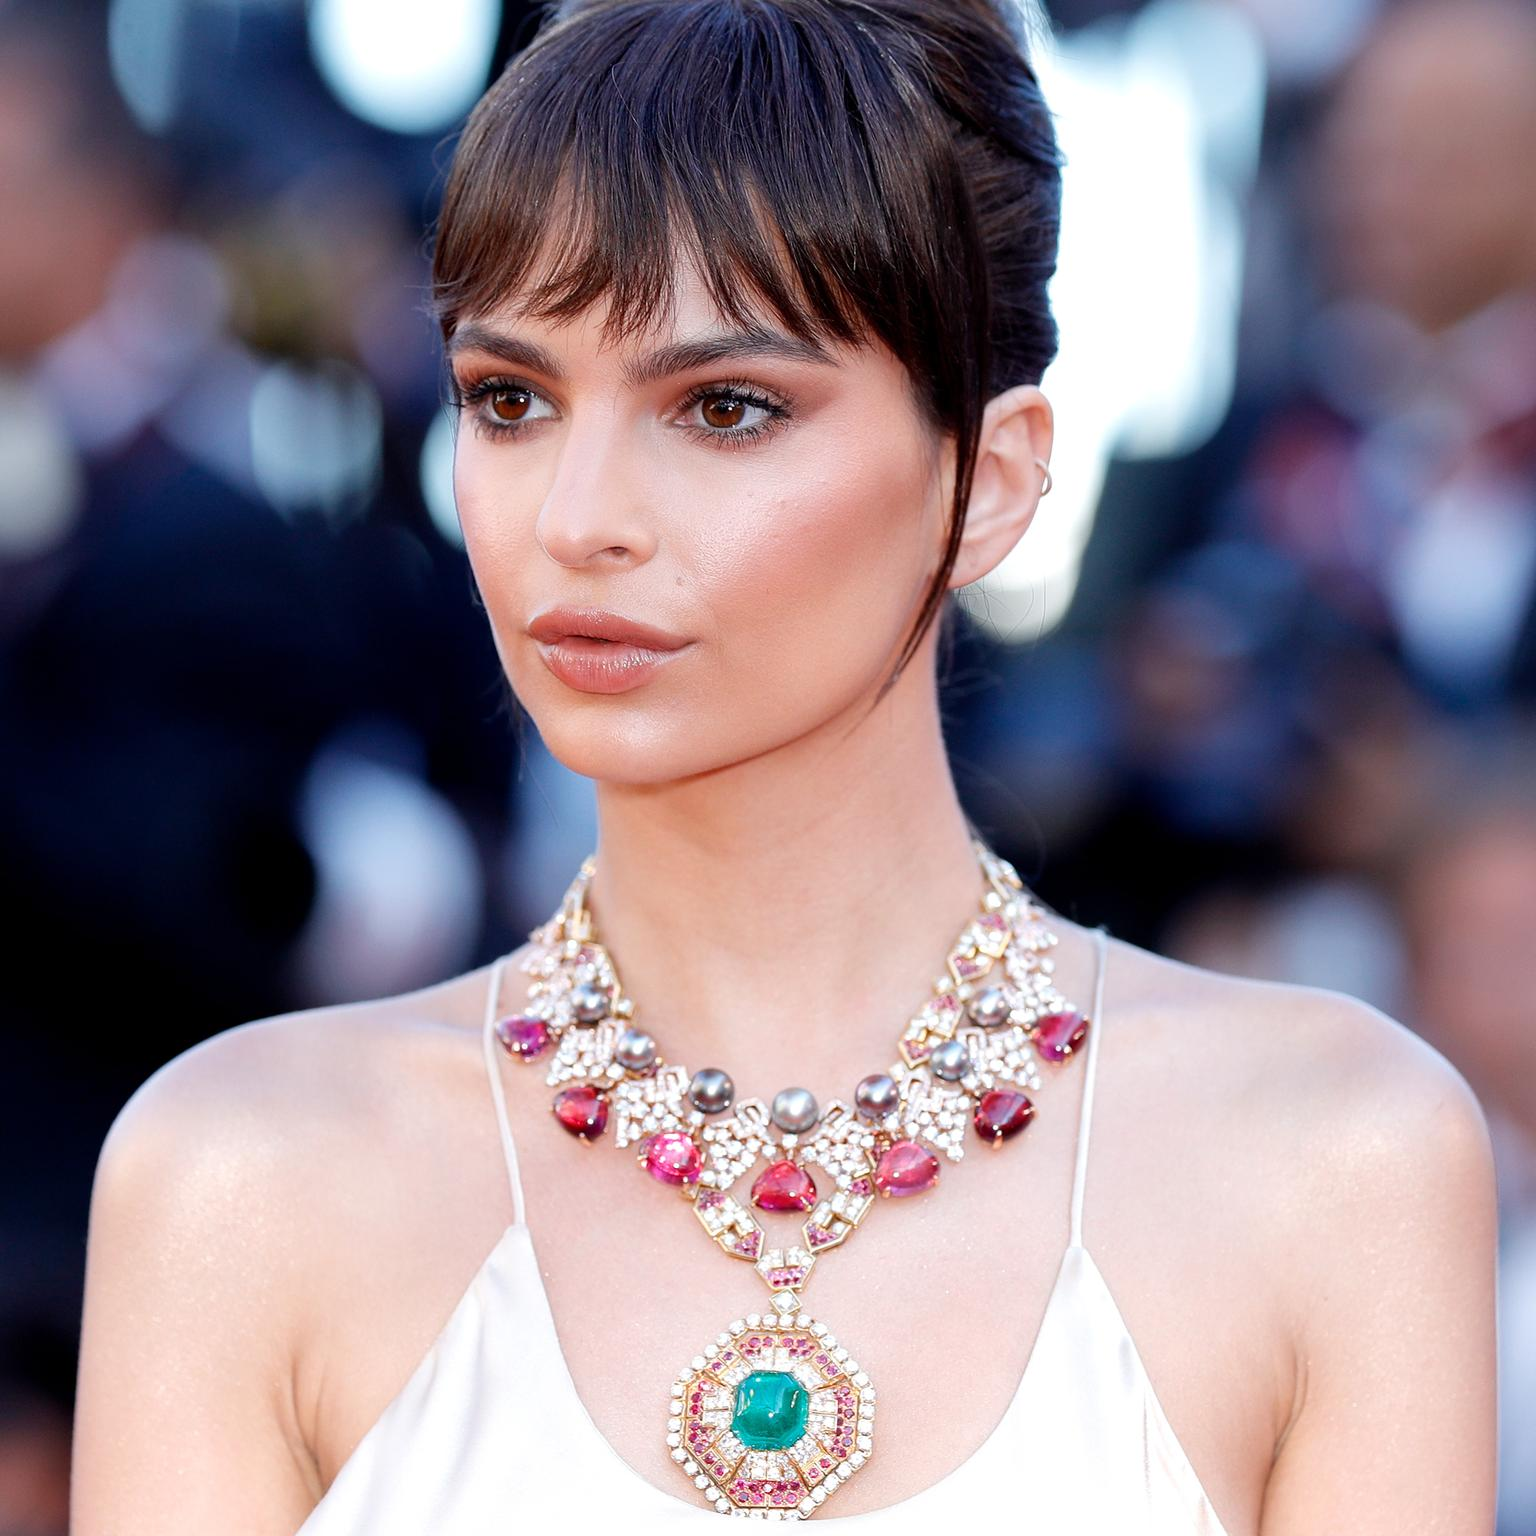 Emily Ratajkowski in high jewellery Bulgari necklace